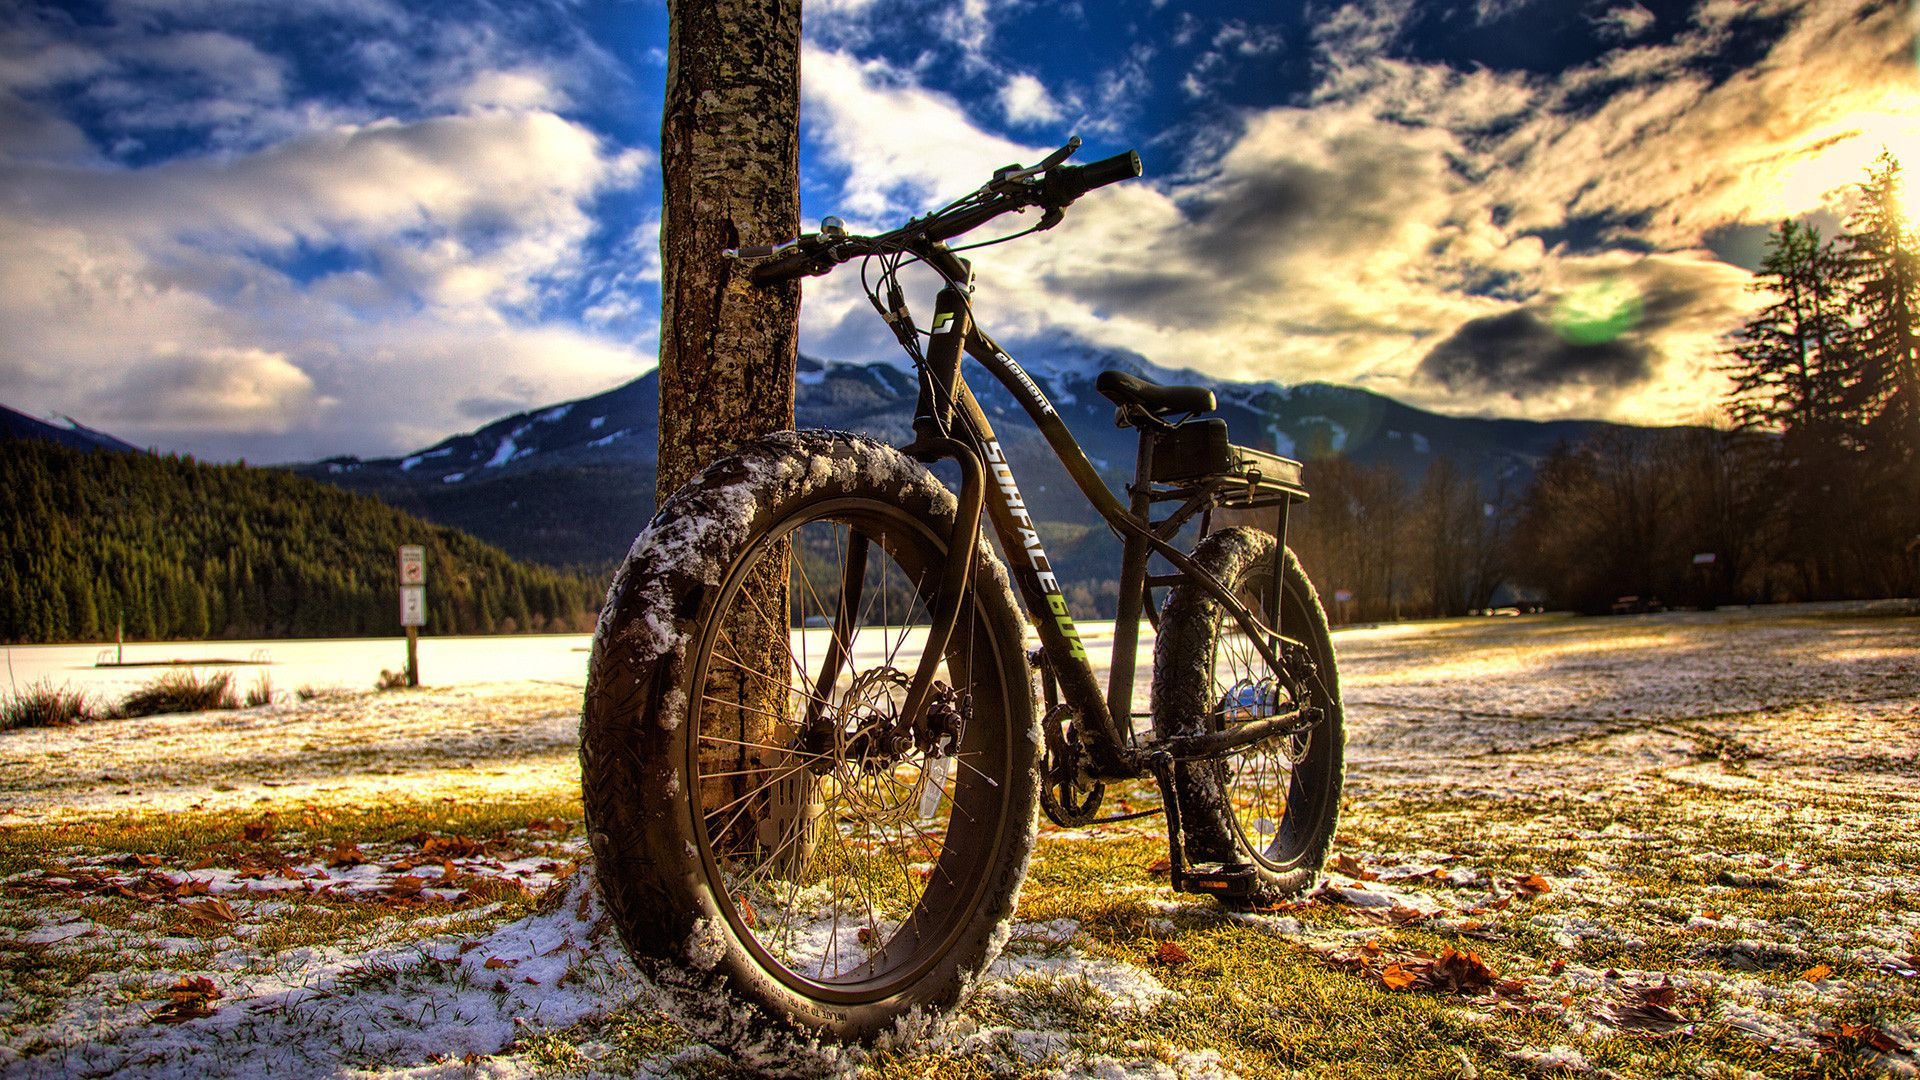 Download Bicycle Wallpapers For Pc: Hdr Mountain Bike Wallpaper 1600x900 Wallpaper Bike